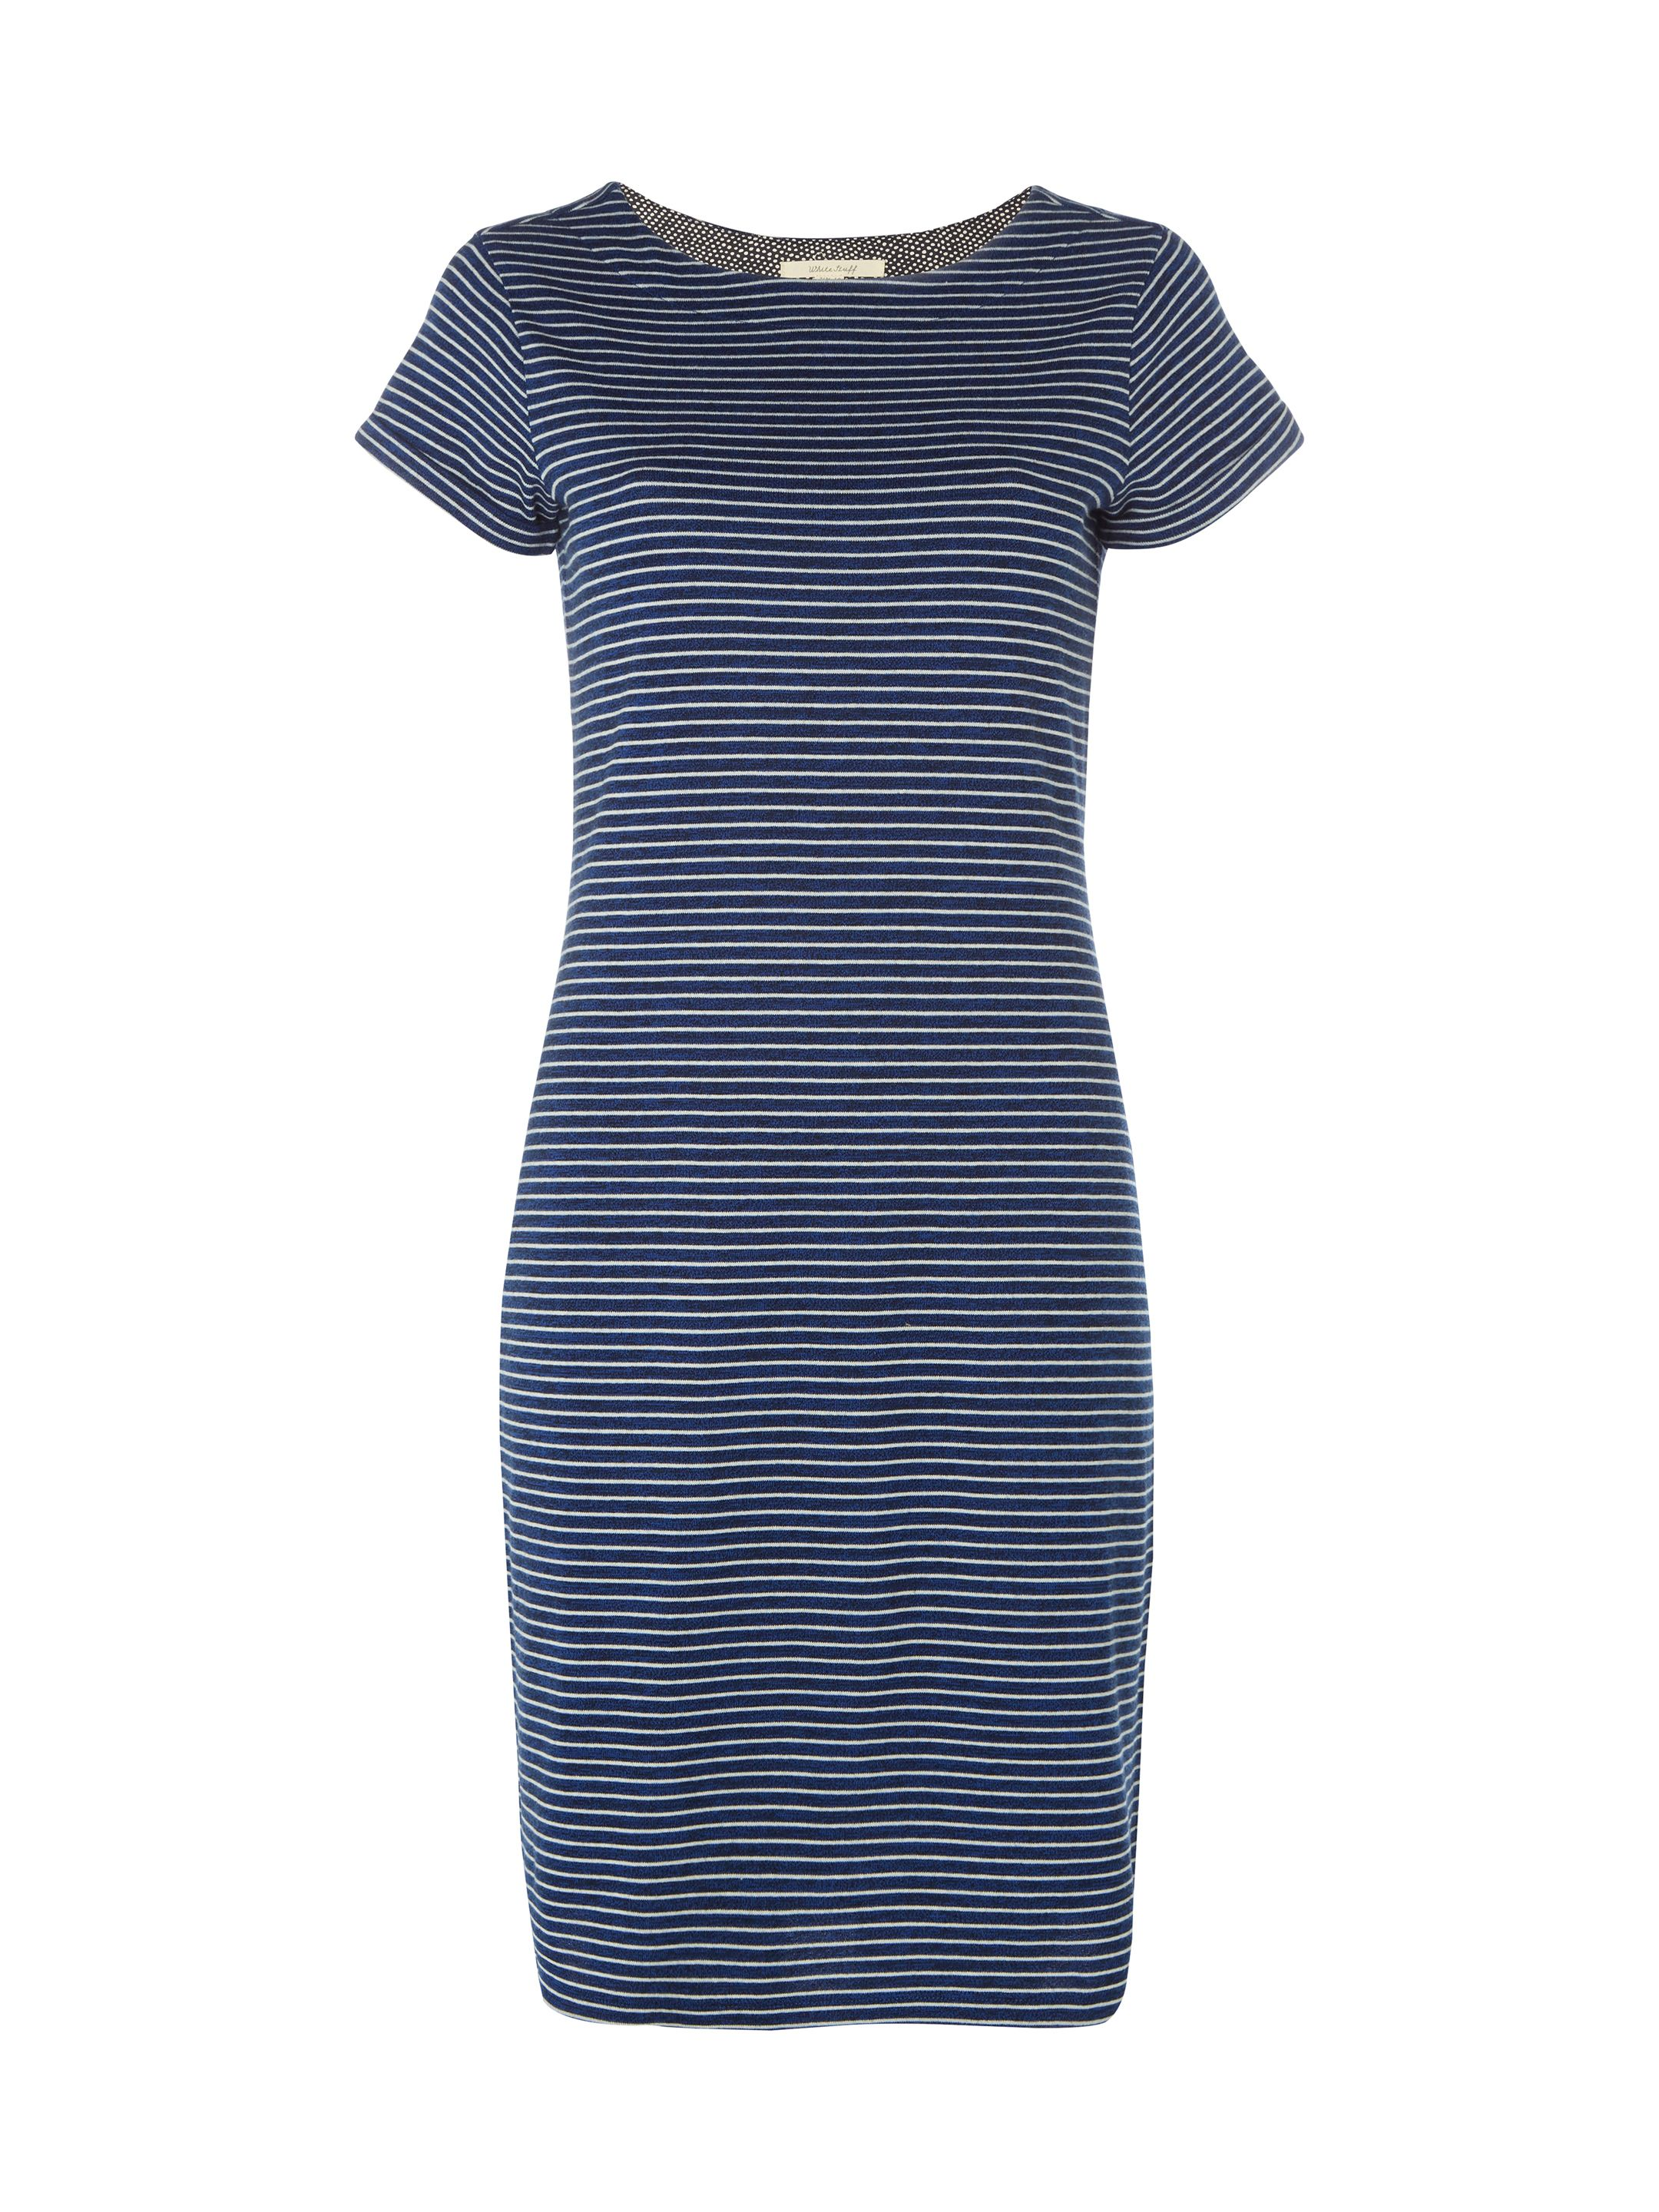 White Stuff Annelise Stripe Dress, Blue